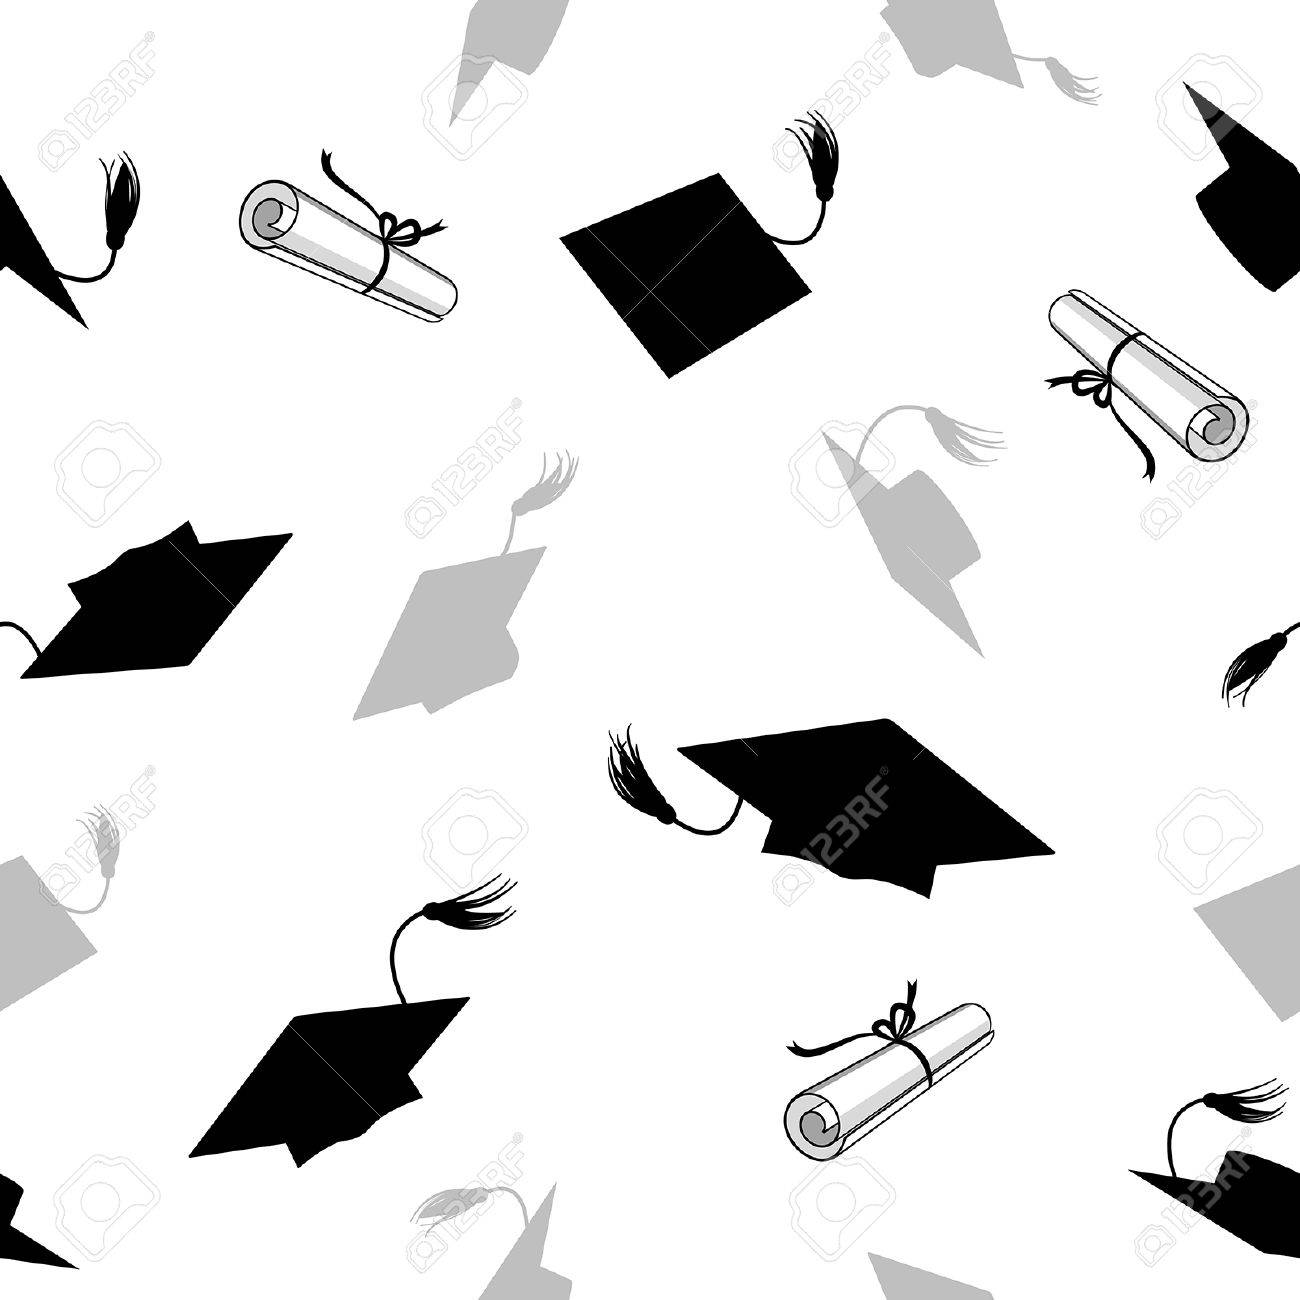 seamless pattern with graduation caps and diplomas - 54025343